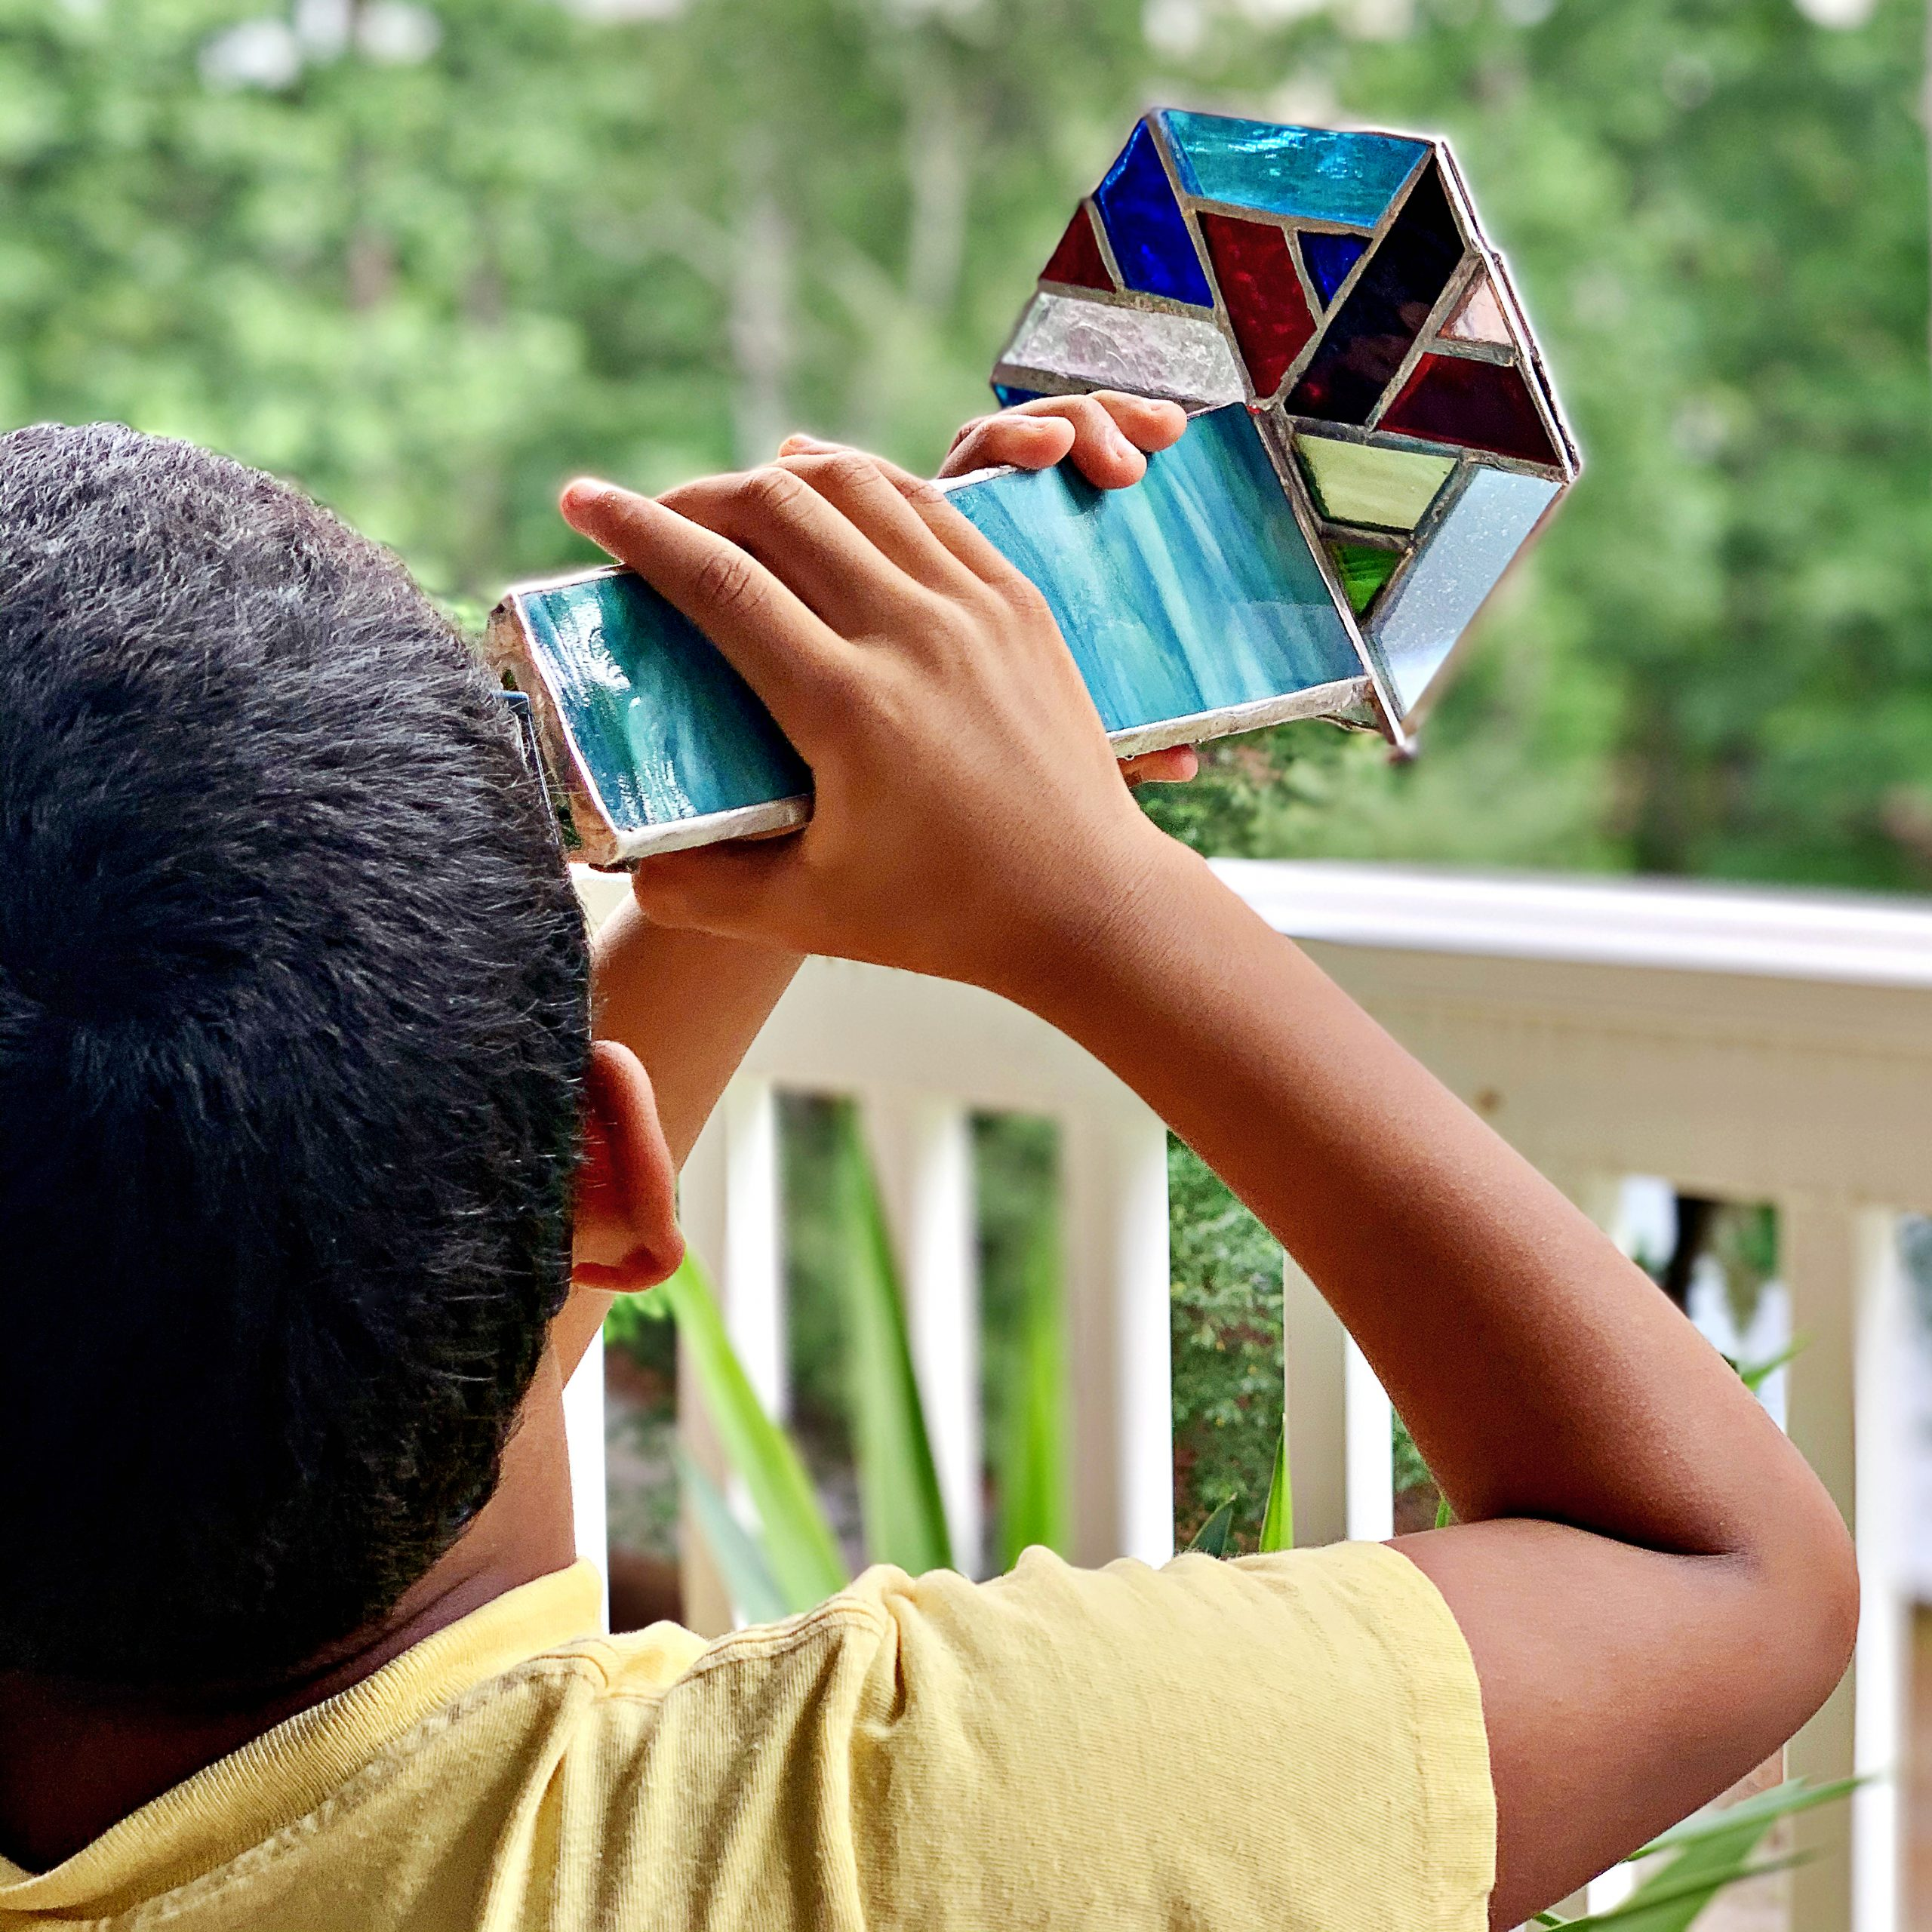 A boy looking through a handmade kaleidoscope, toward the trees.